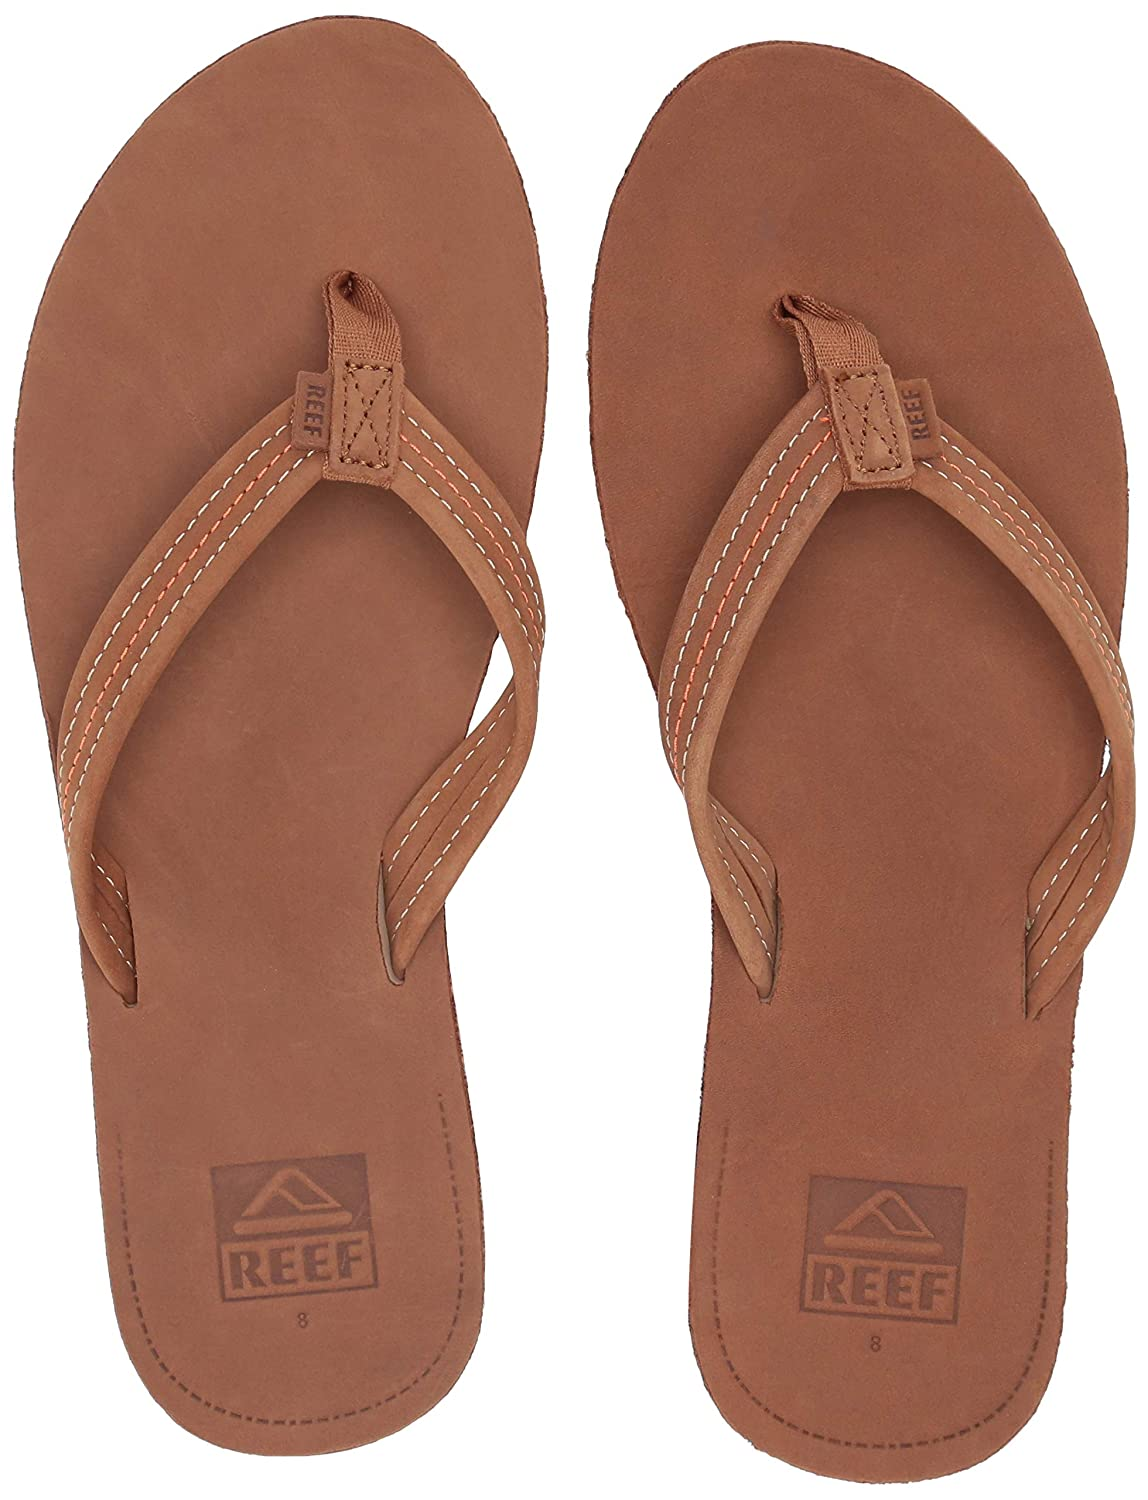 fac67a2579c06 Reef Voyage Lite Womens Leather Flip Flops